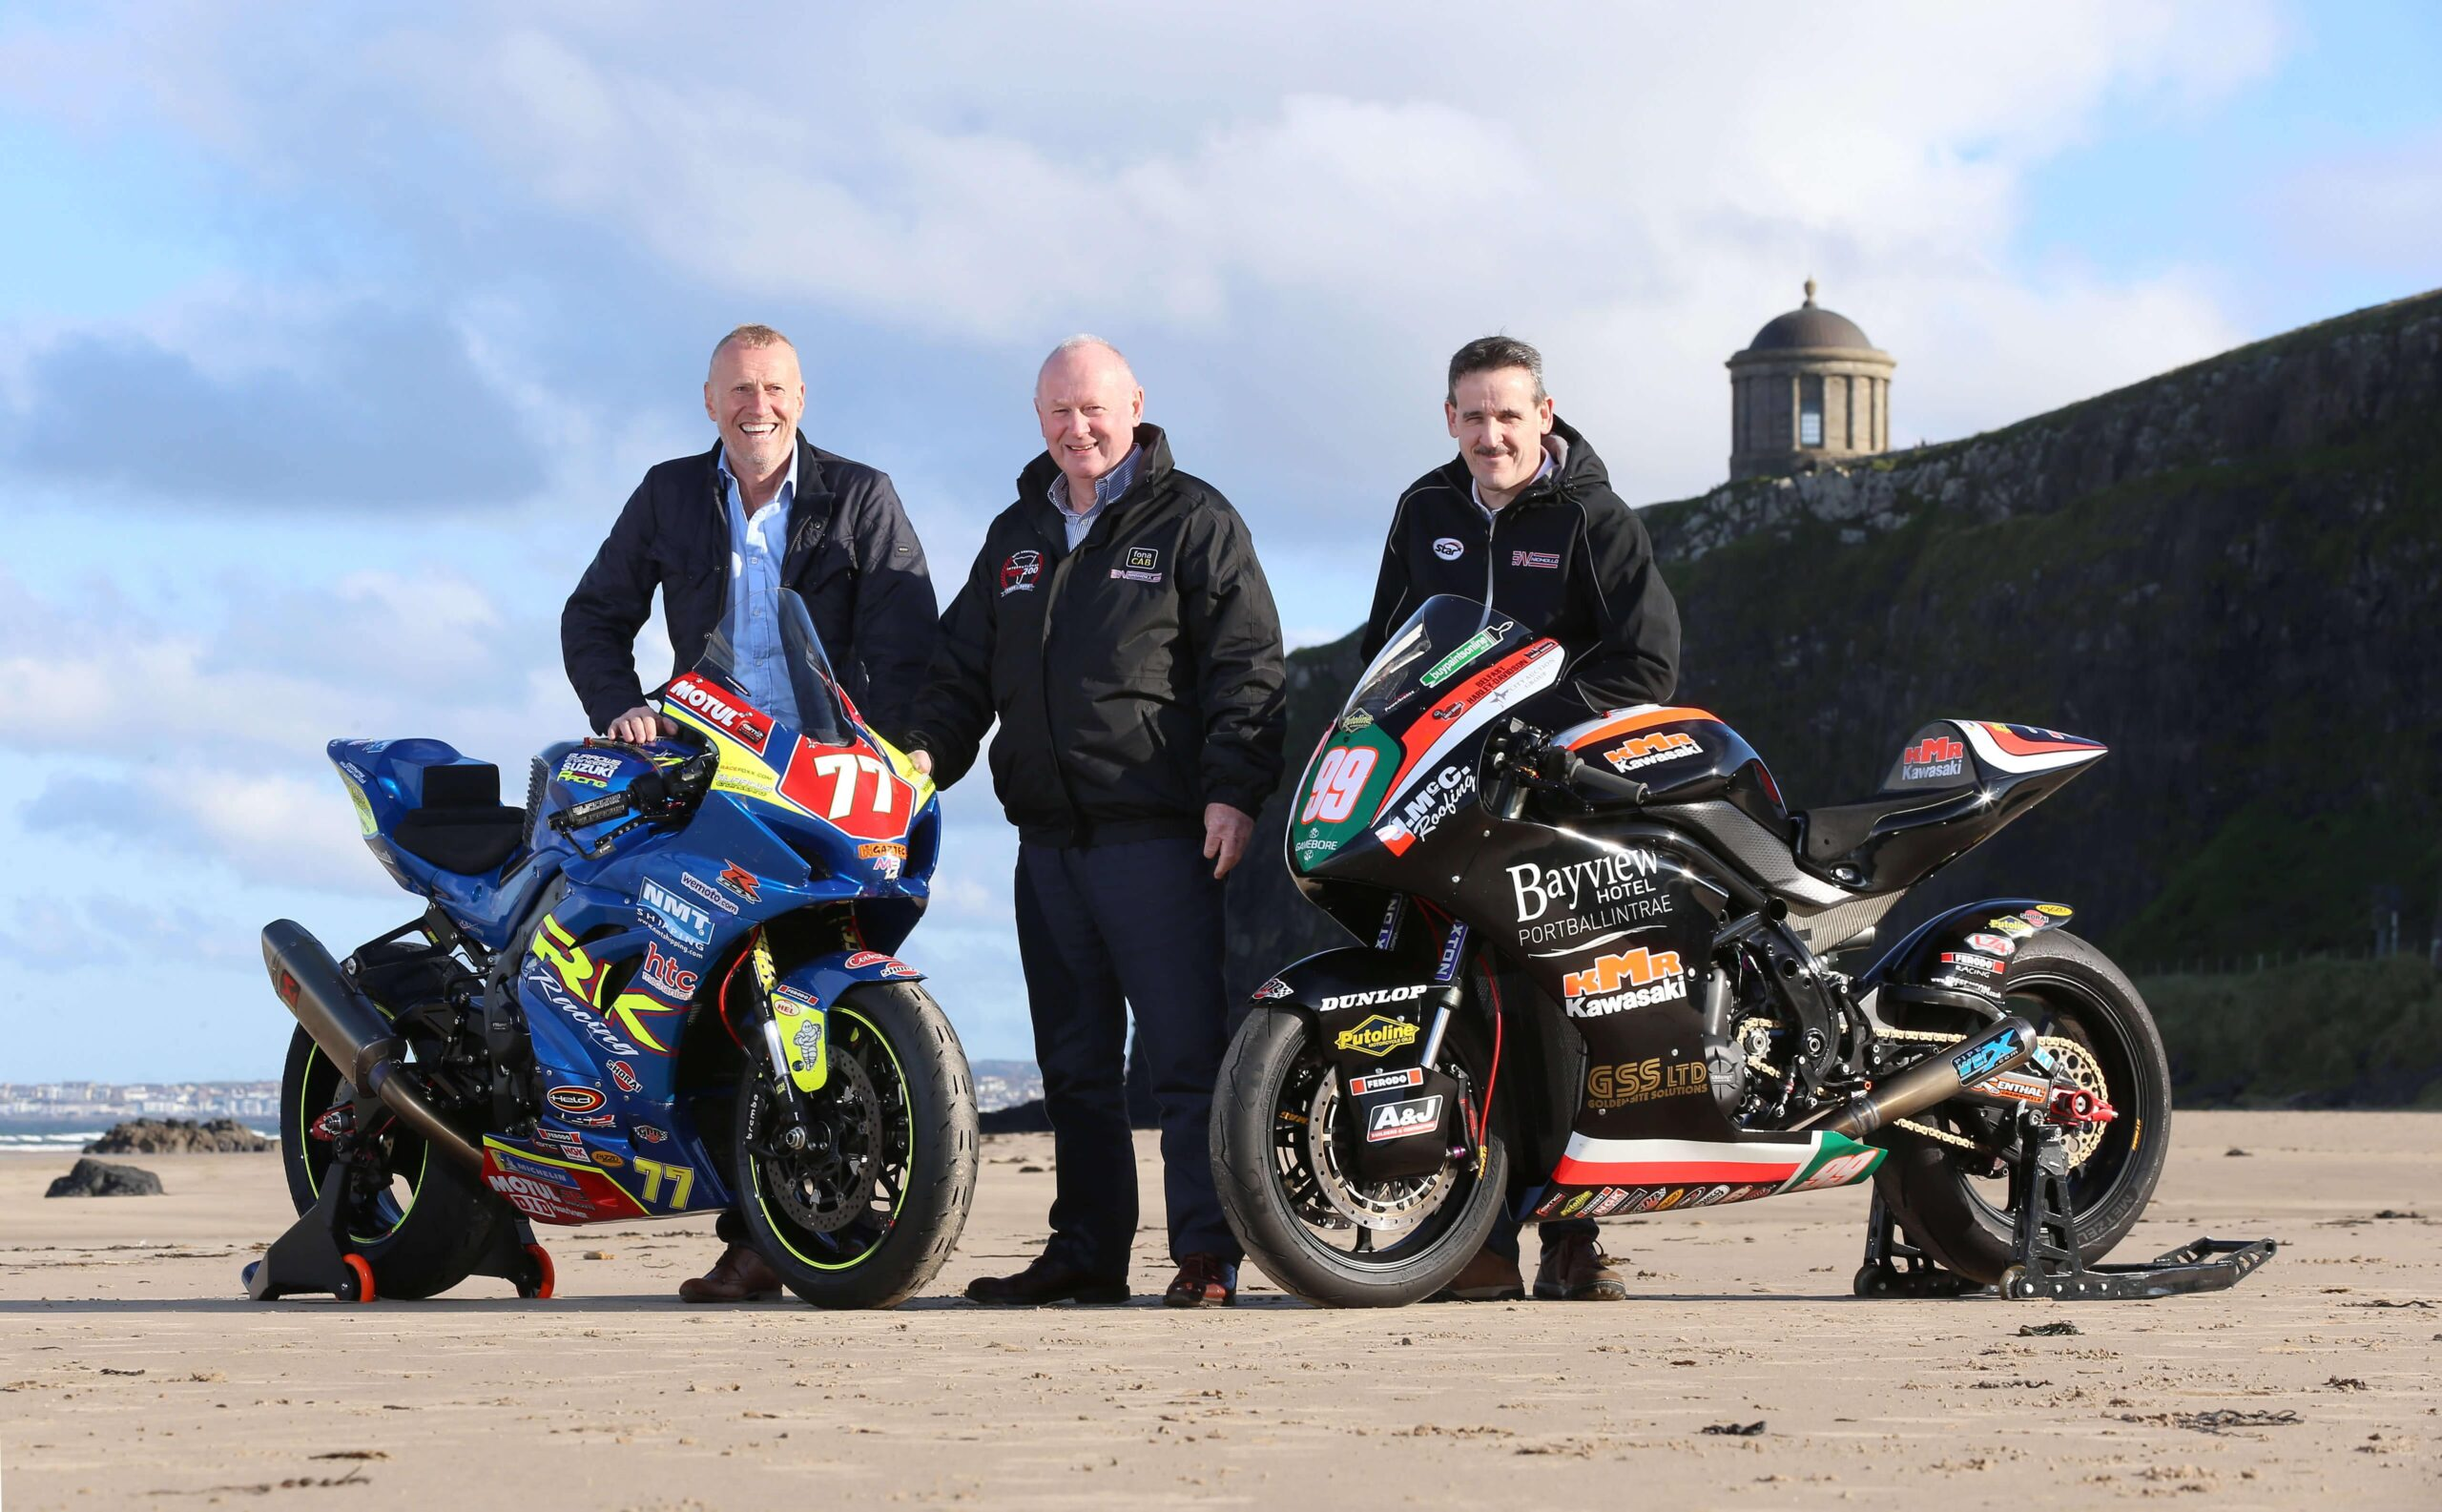 FonaCAB/Nicholl Oils Retain Title Sponsorship Reigns, Agree New 3 Year Sponsorship Agreement With NW200 Organisers